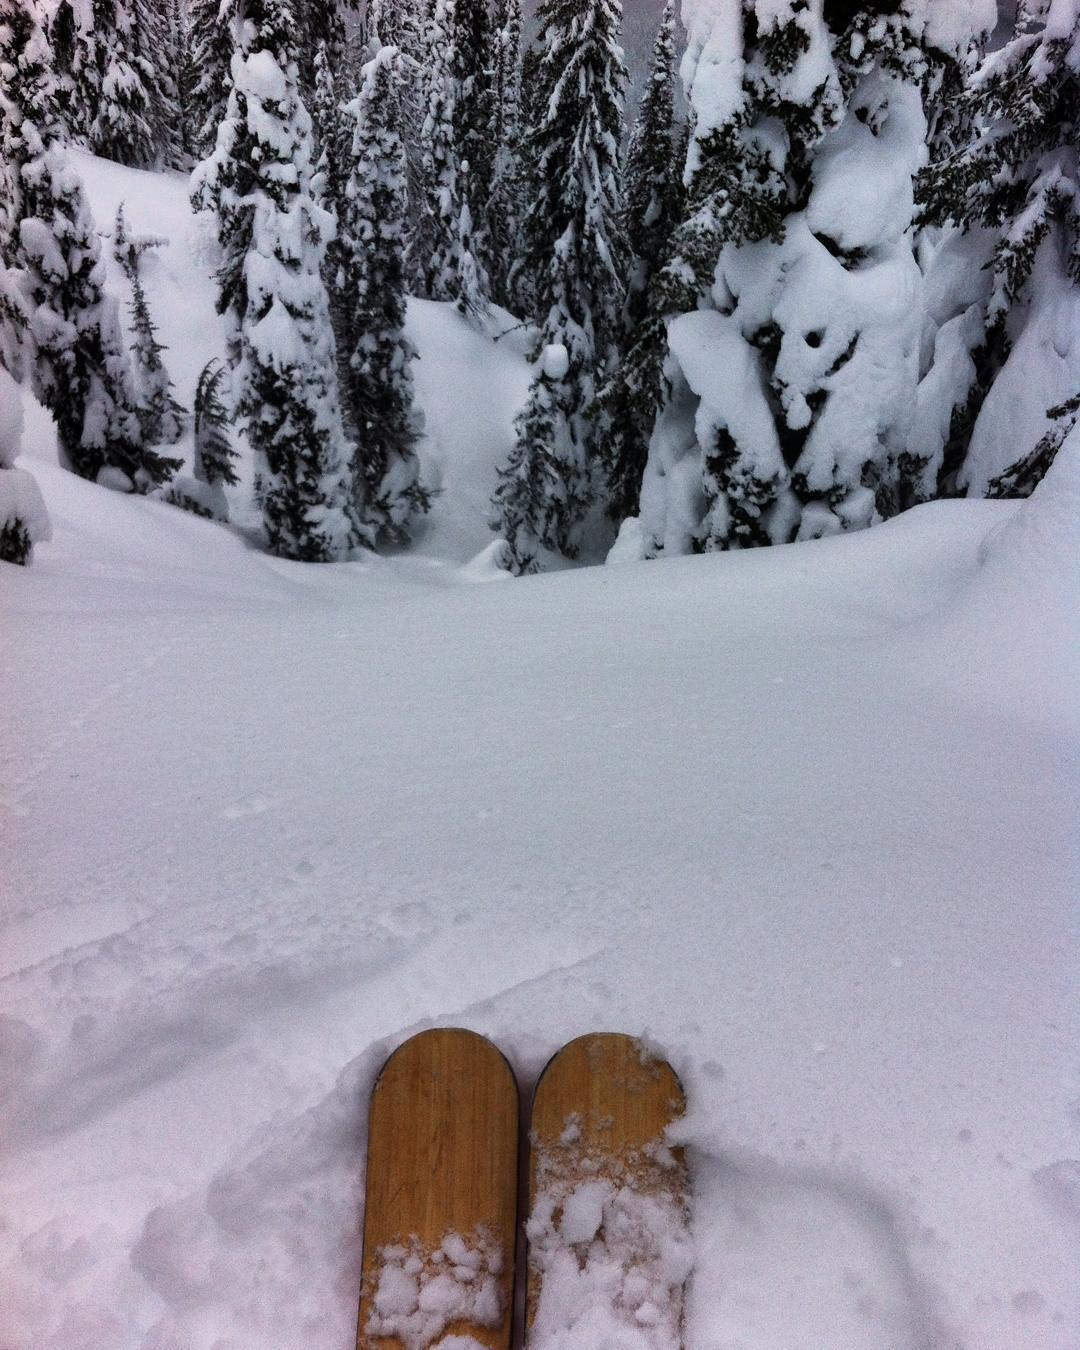 Droping. #revelstoke #powder #backcountry #earnyourturns #skitouring #skiing#chasingsnowflakes #graceskis